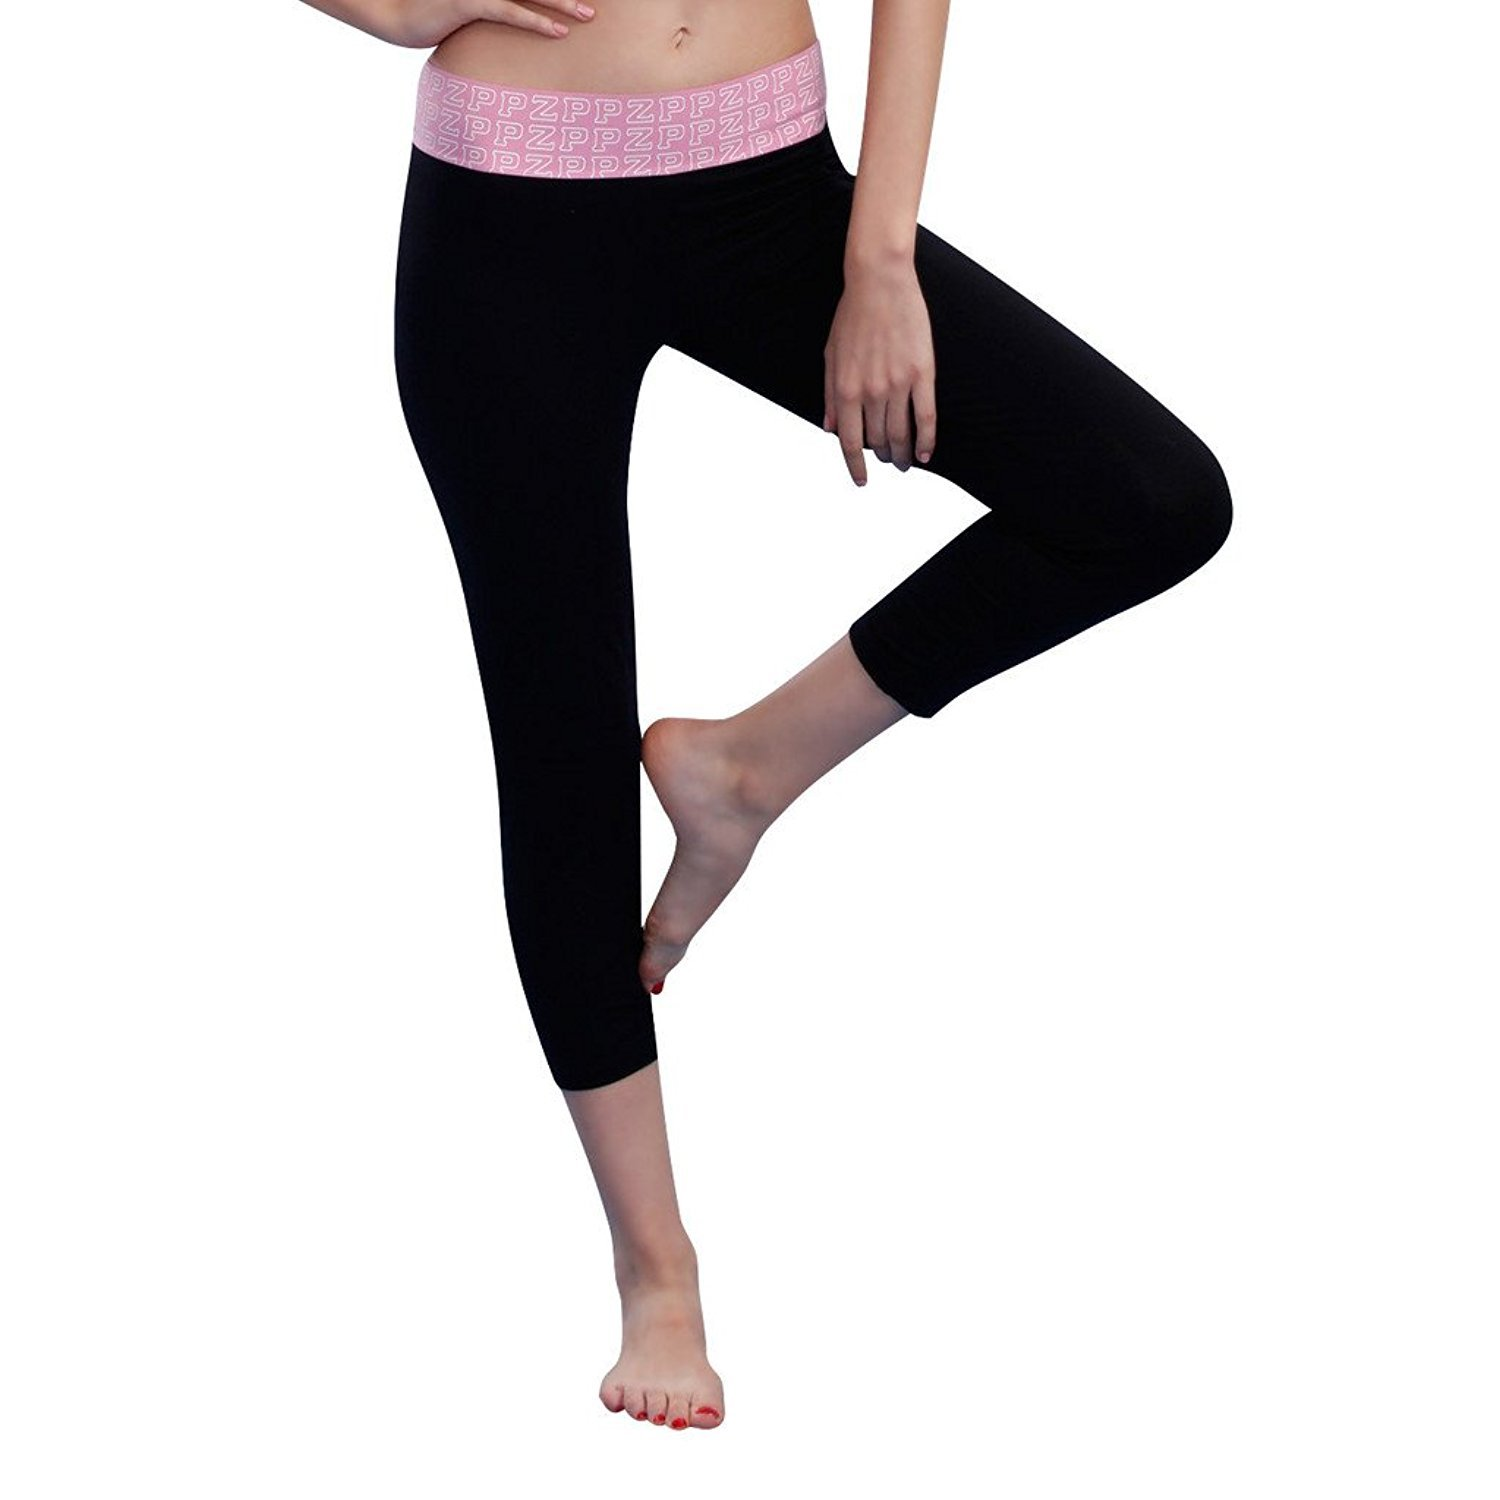 Women's Tight Yoga Capris Pants Stretchy Sports Leggings Black XS-L by Generic